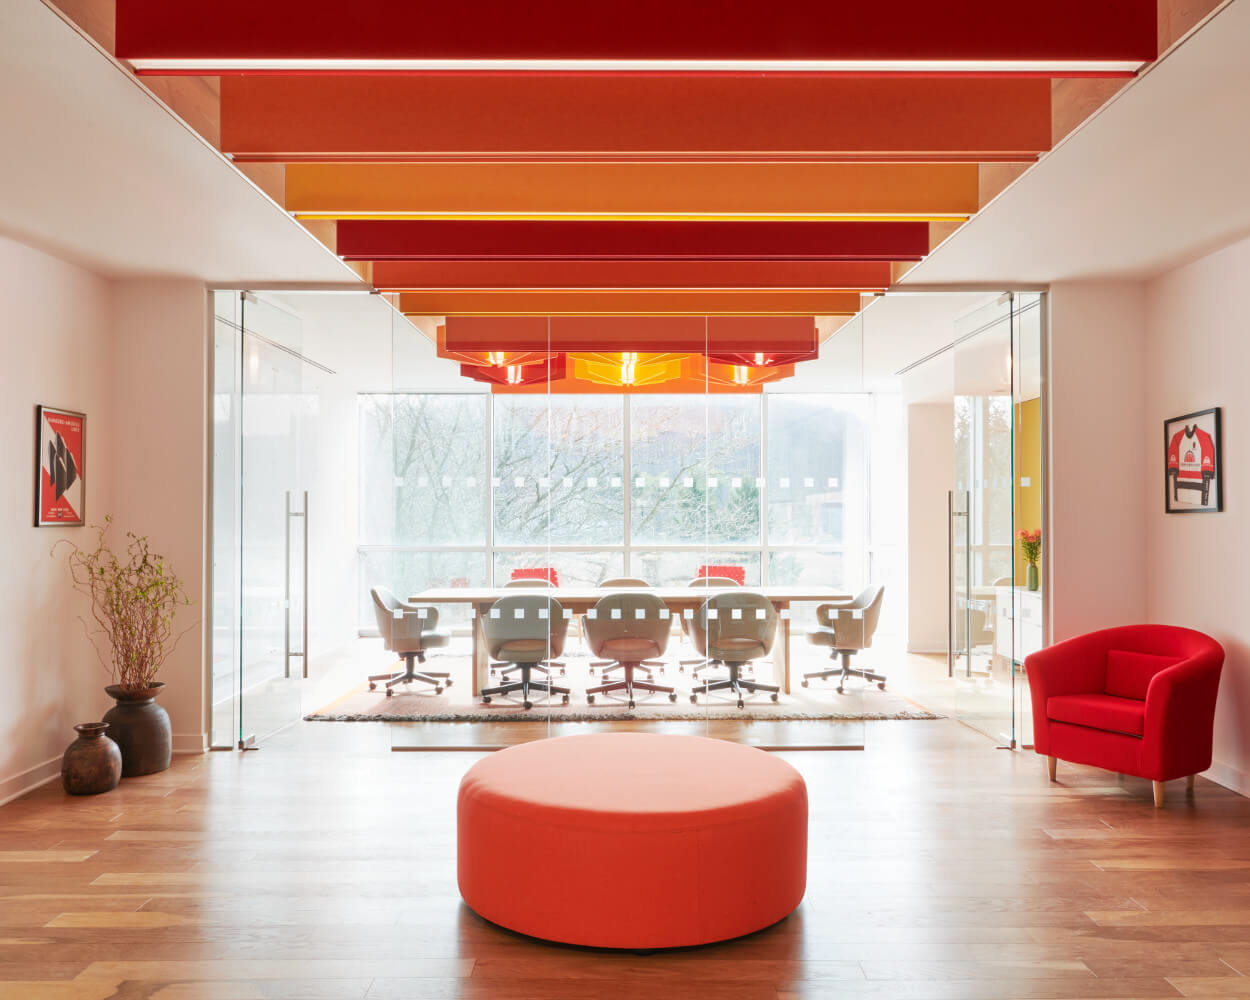 open plan with vibrant colors transforms this office space